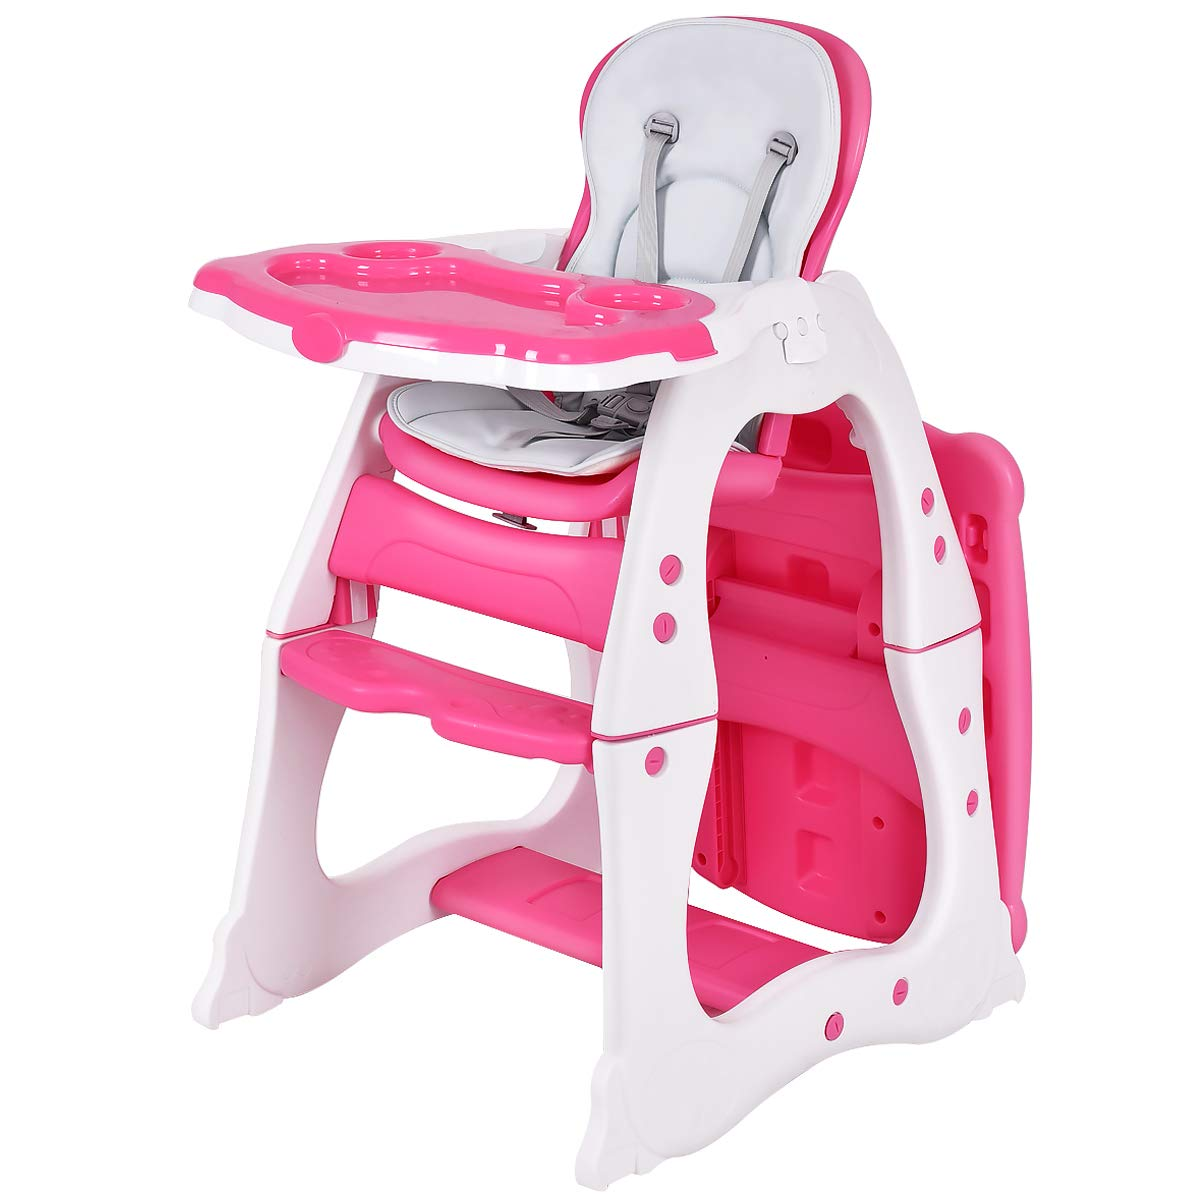 Costzon Baby High Chair, 3 in 1 Infant Table and Chair Set, Convertible Booster Seat with 3-Position Adjustable Feeding Tray, Adjustable Seat Back, 5-Point Harness (Pink) by Costzon